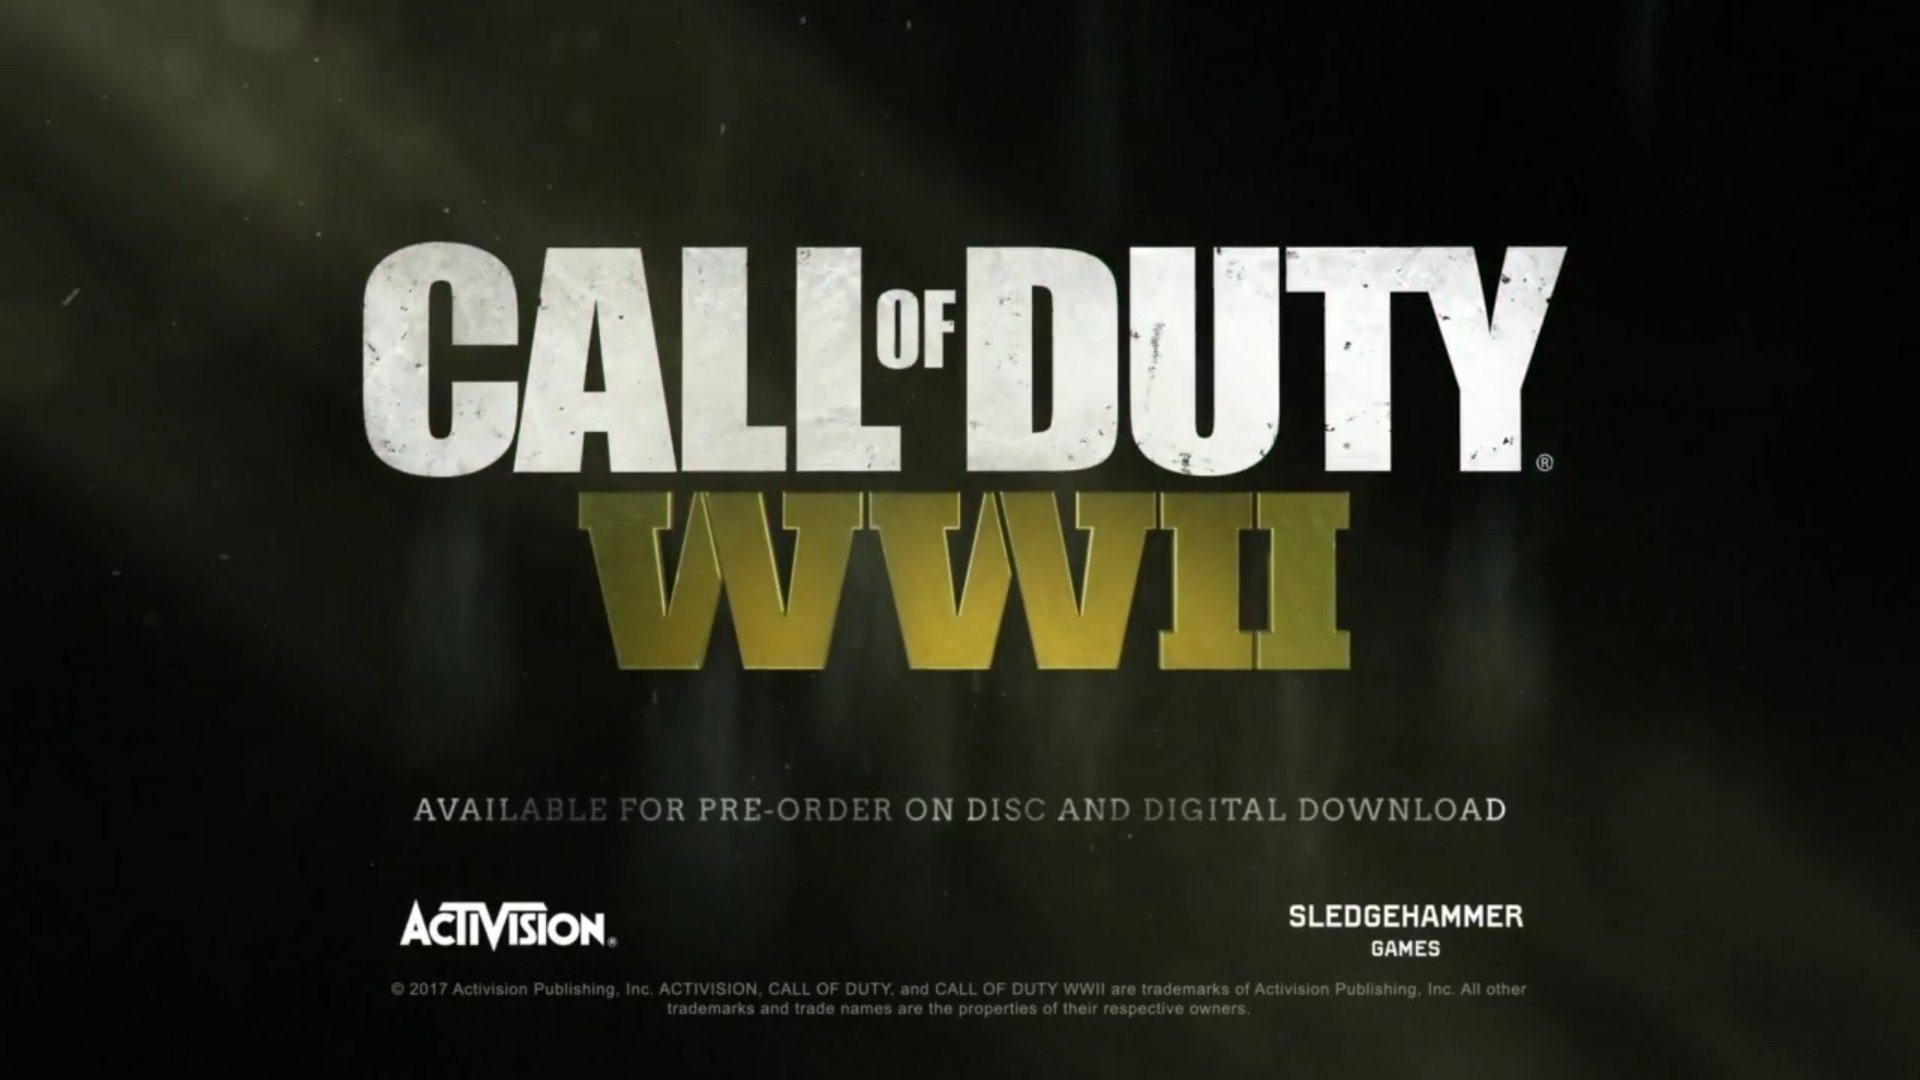 Call of Duty: World War II Might Come to Switch